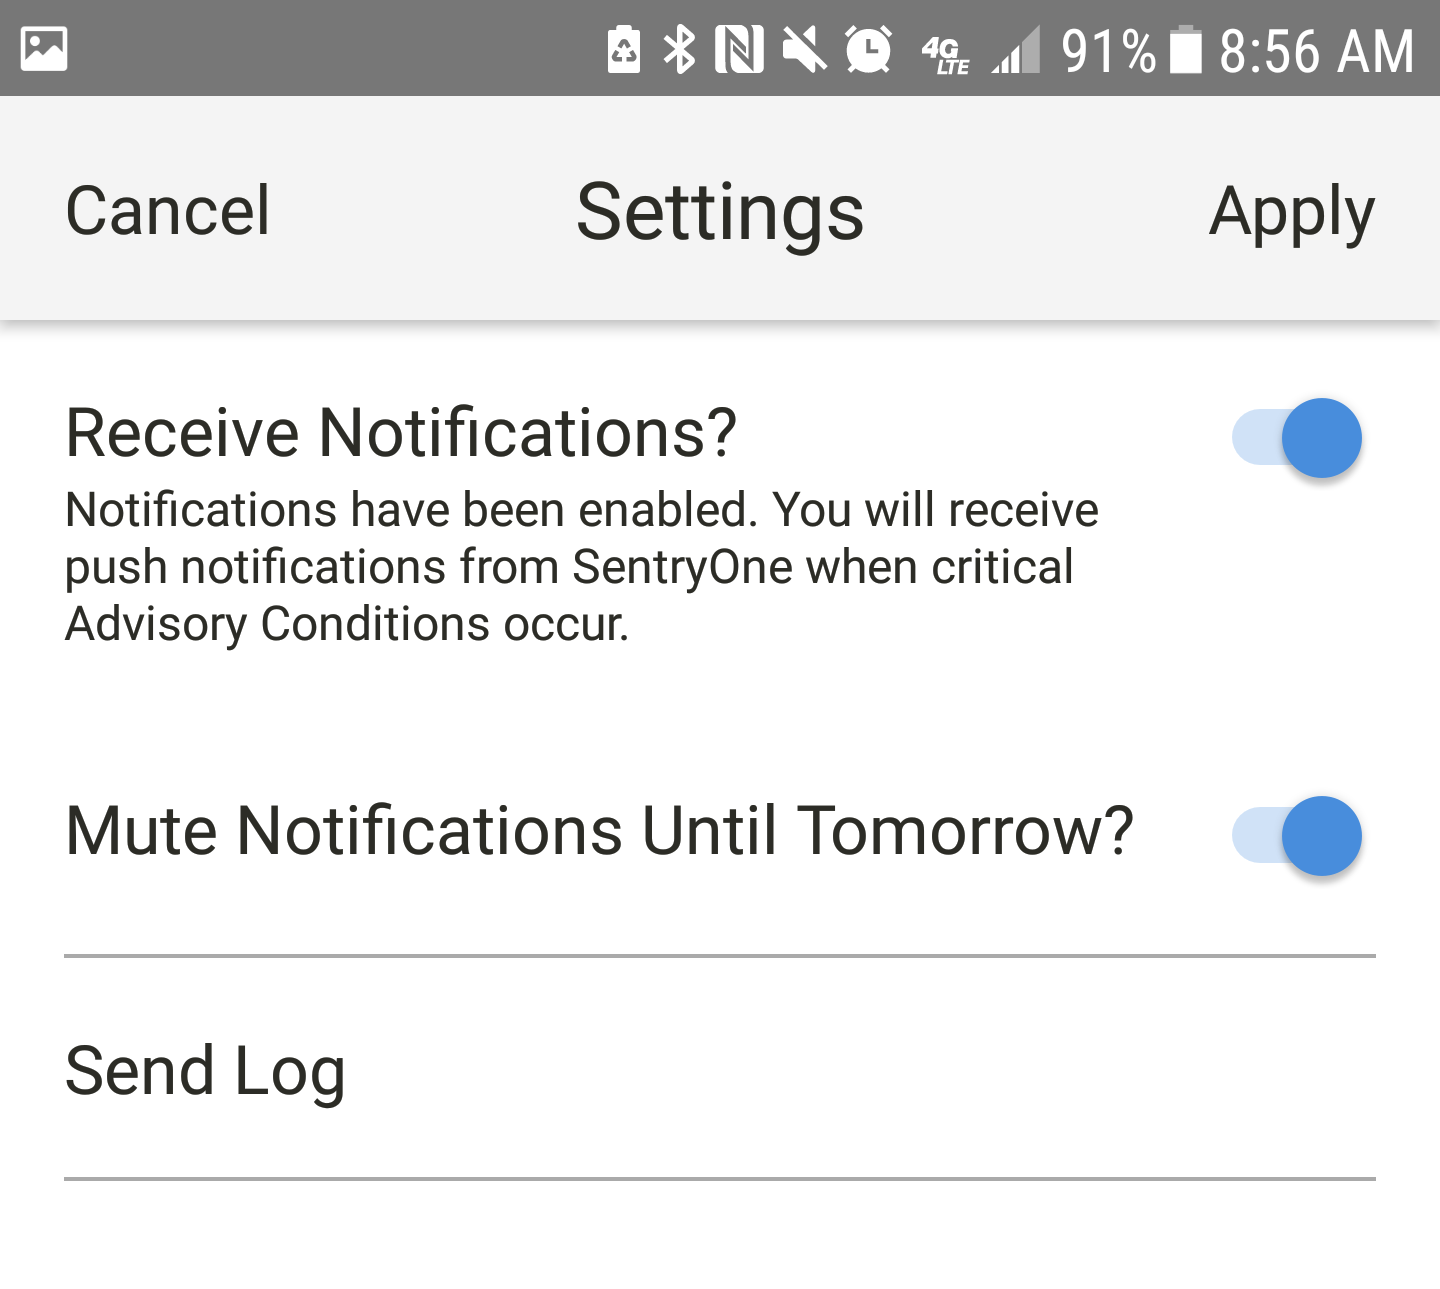 SentryOne App for Android Settings